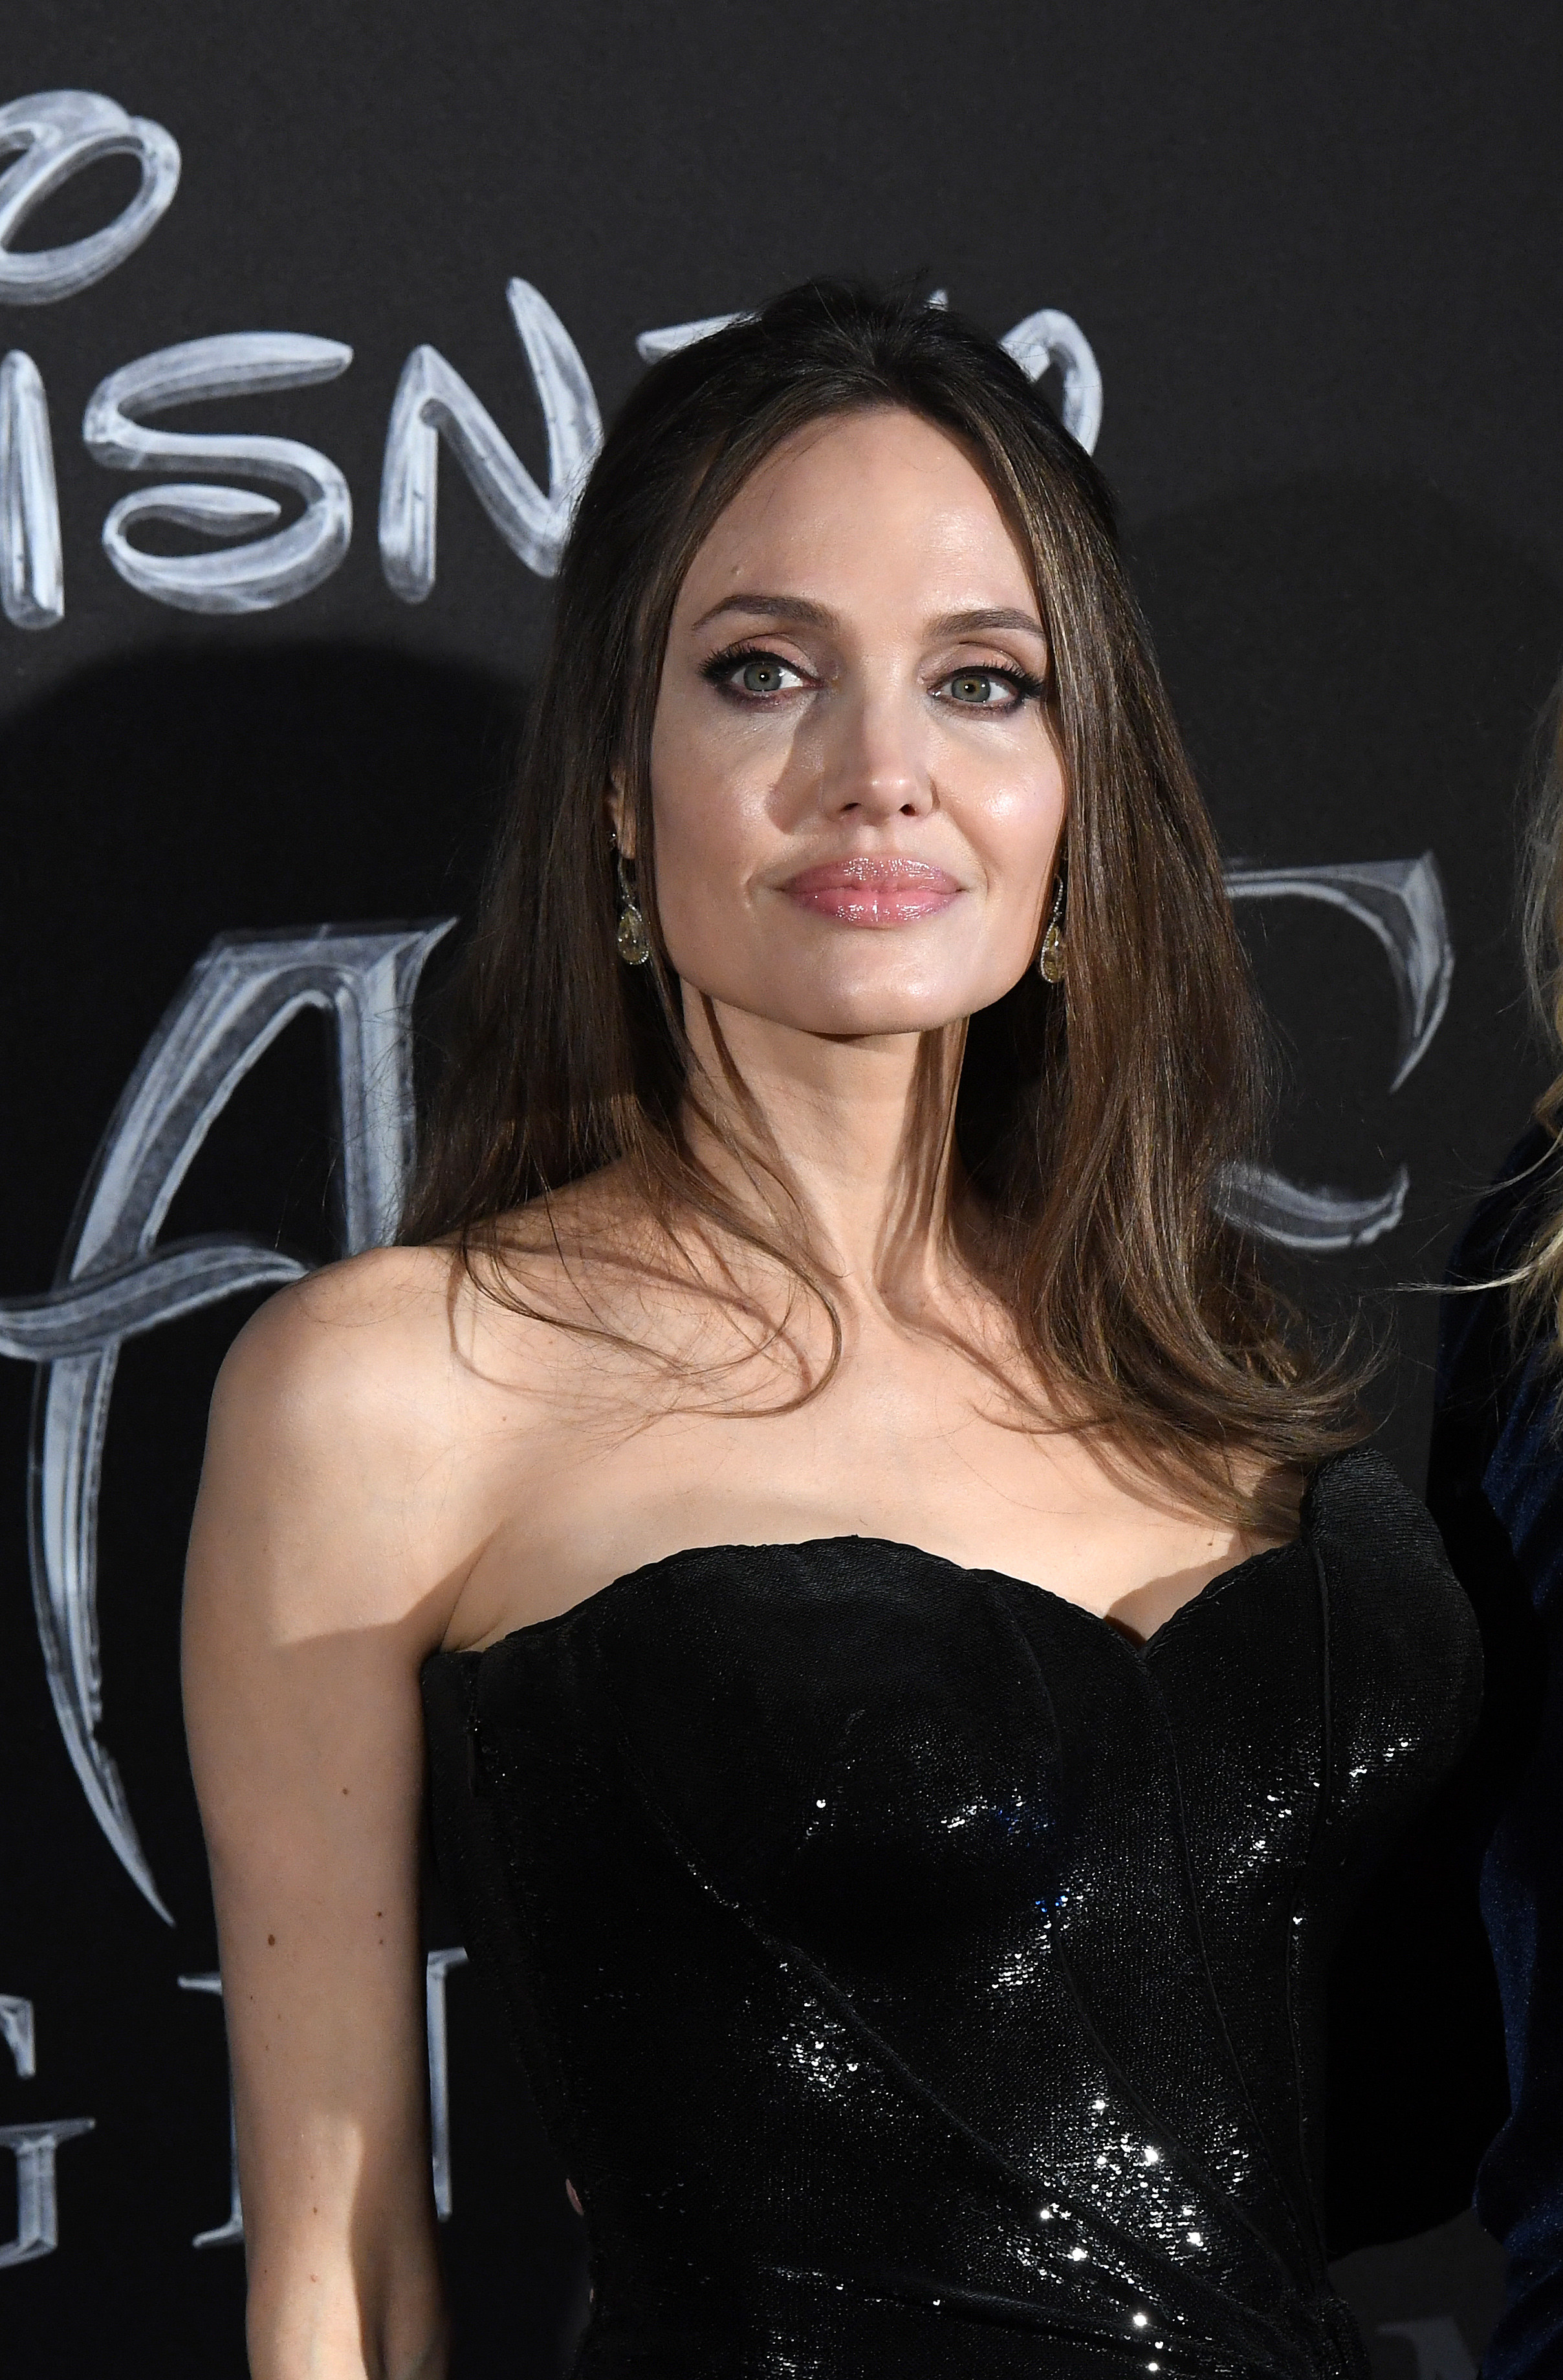 Angelina Jolie in a strapless outfit on the red carpet